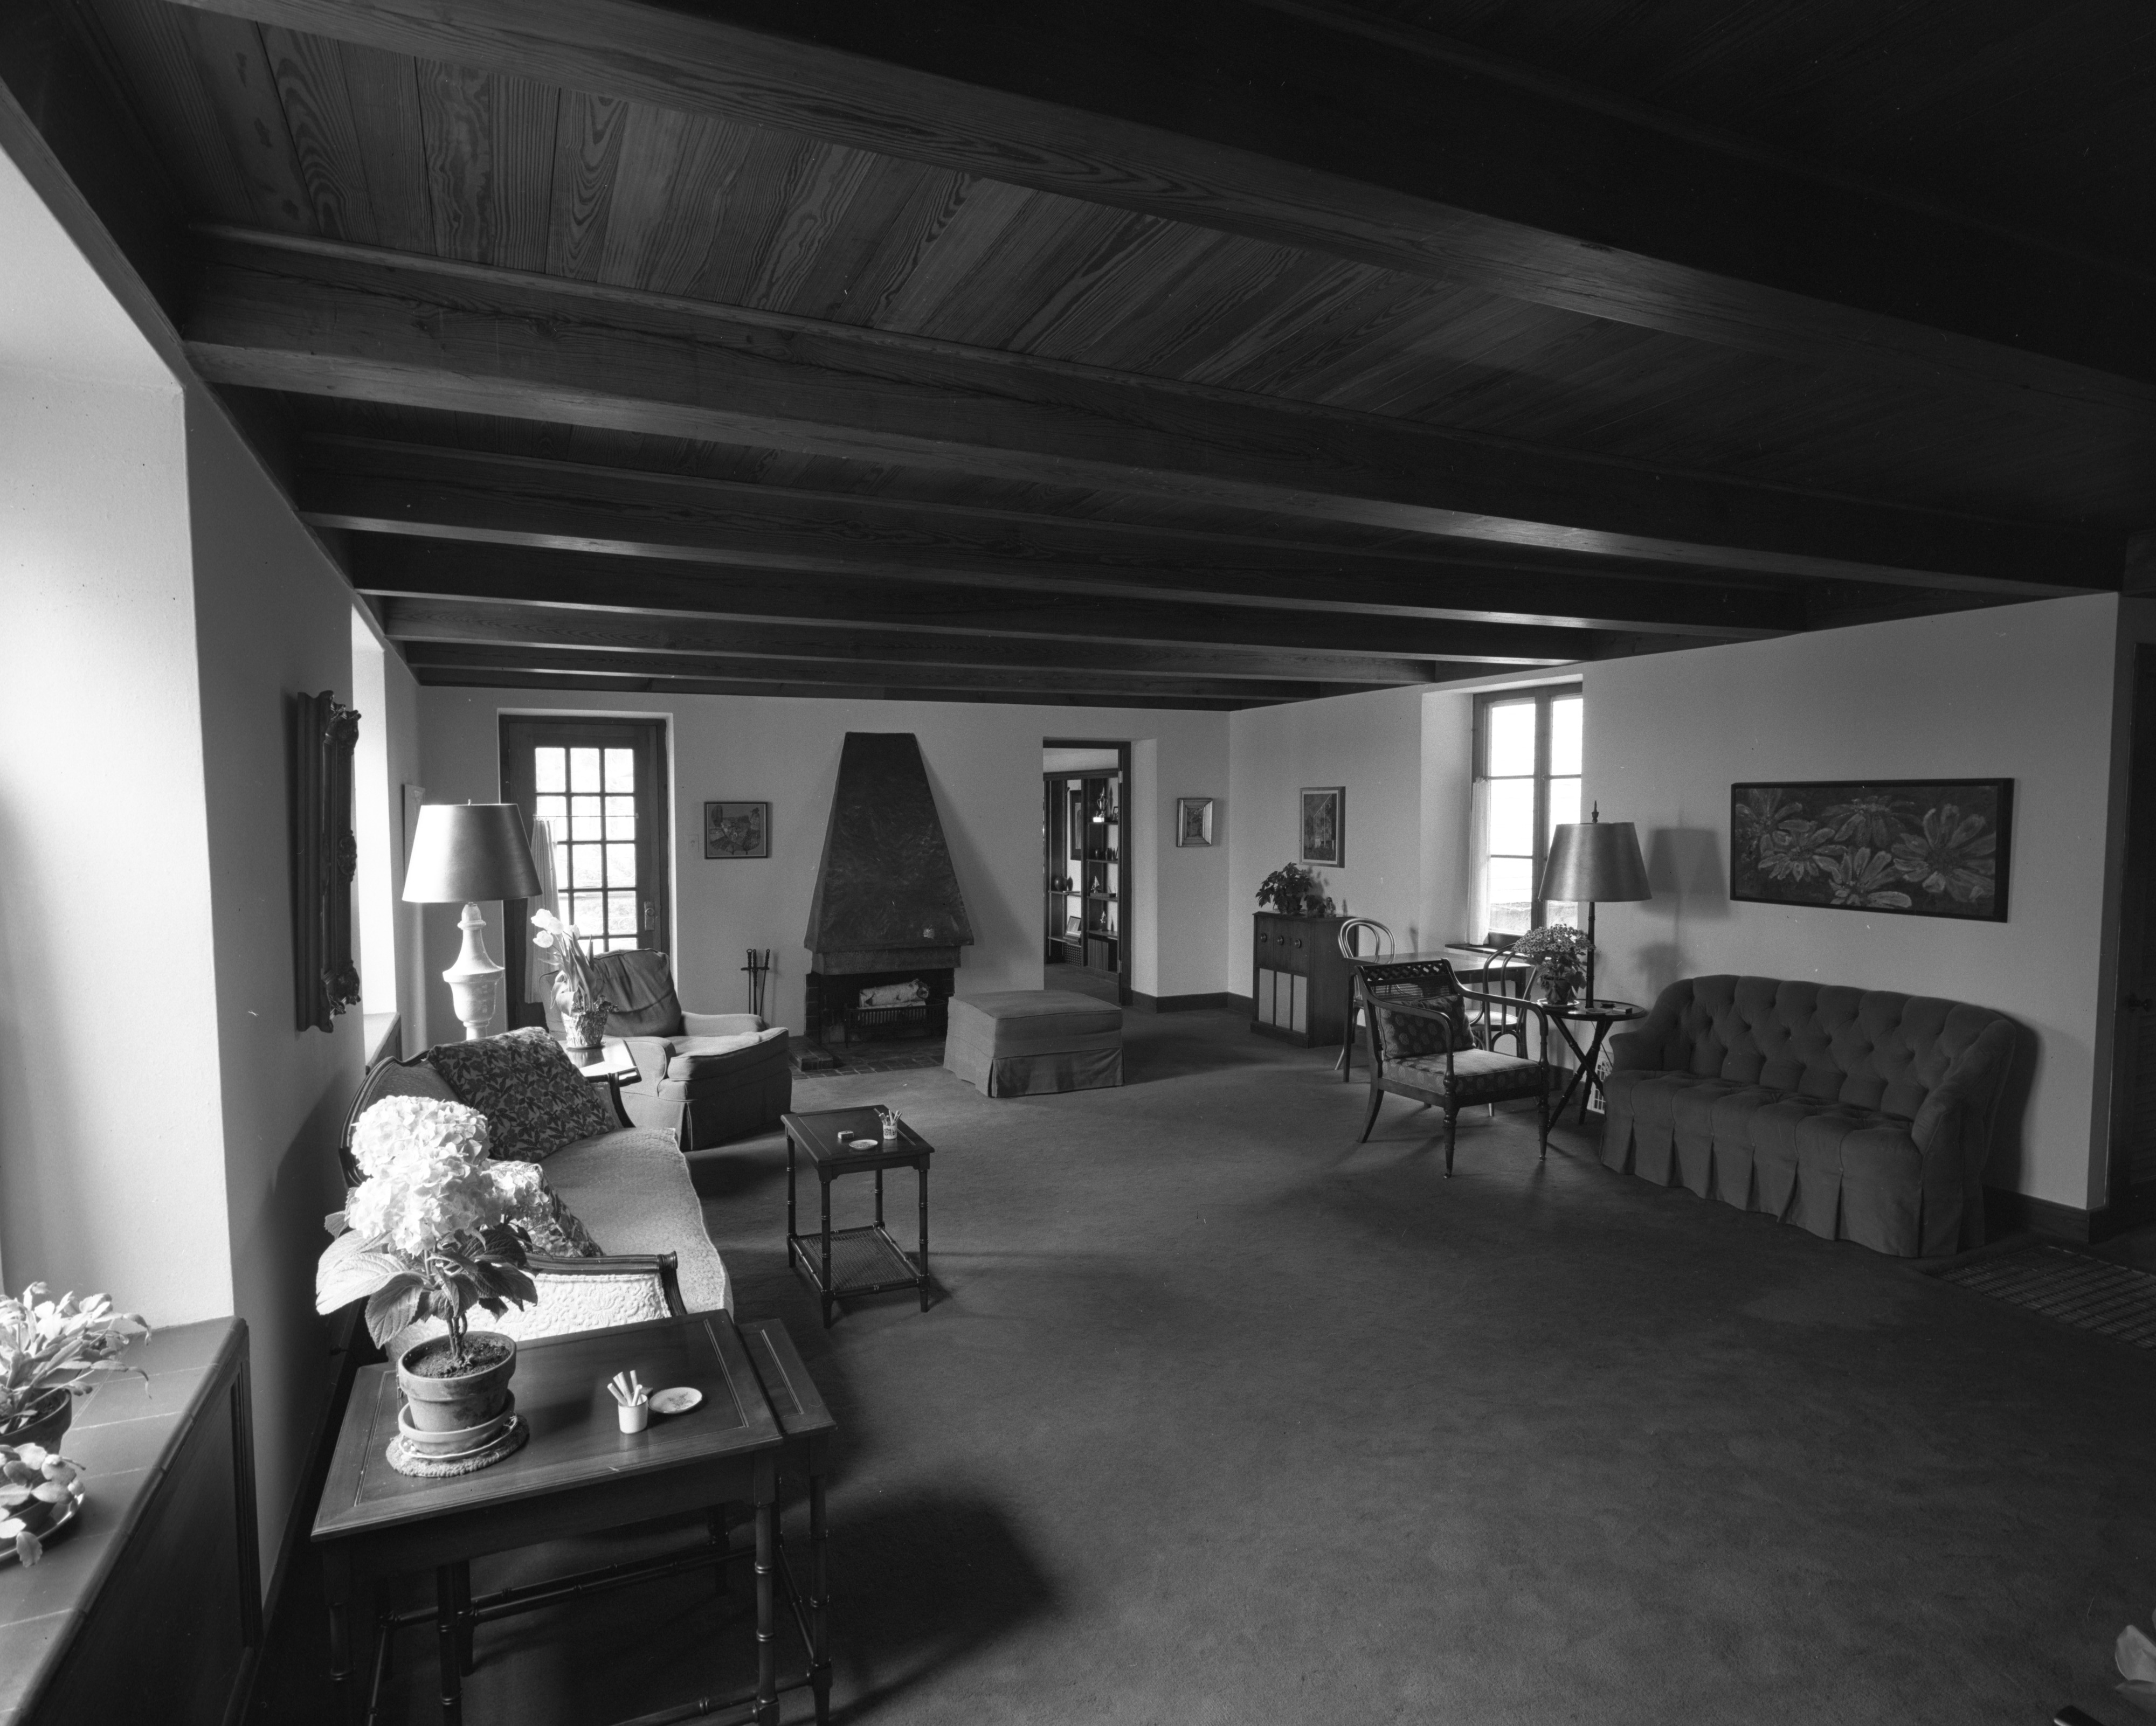 Spacious Living Room at Dr. William C. Grabb Residence, April 1967 image